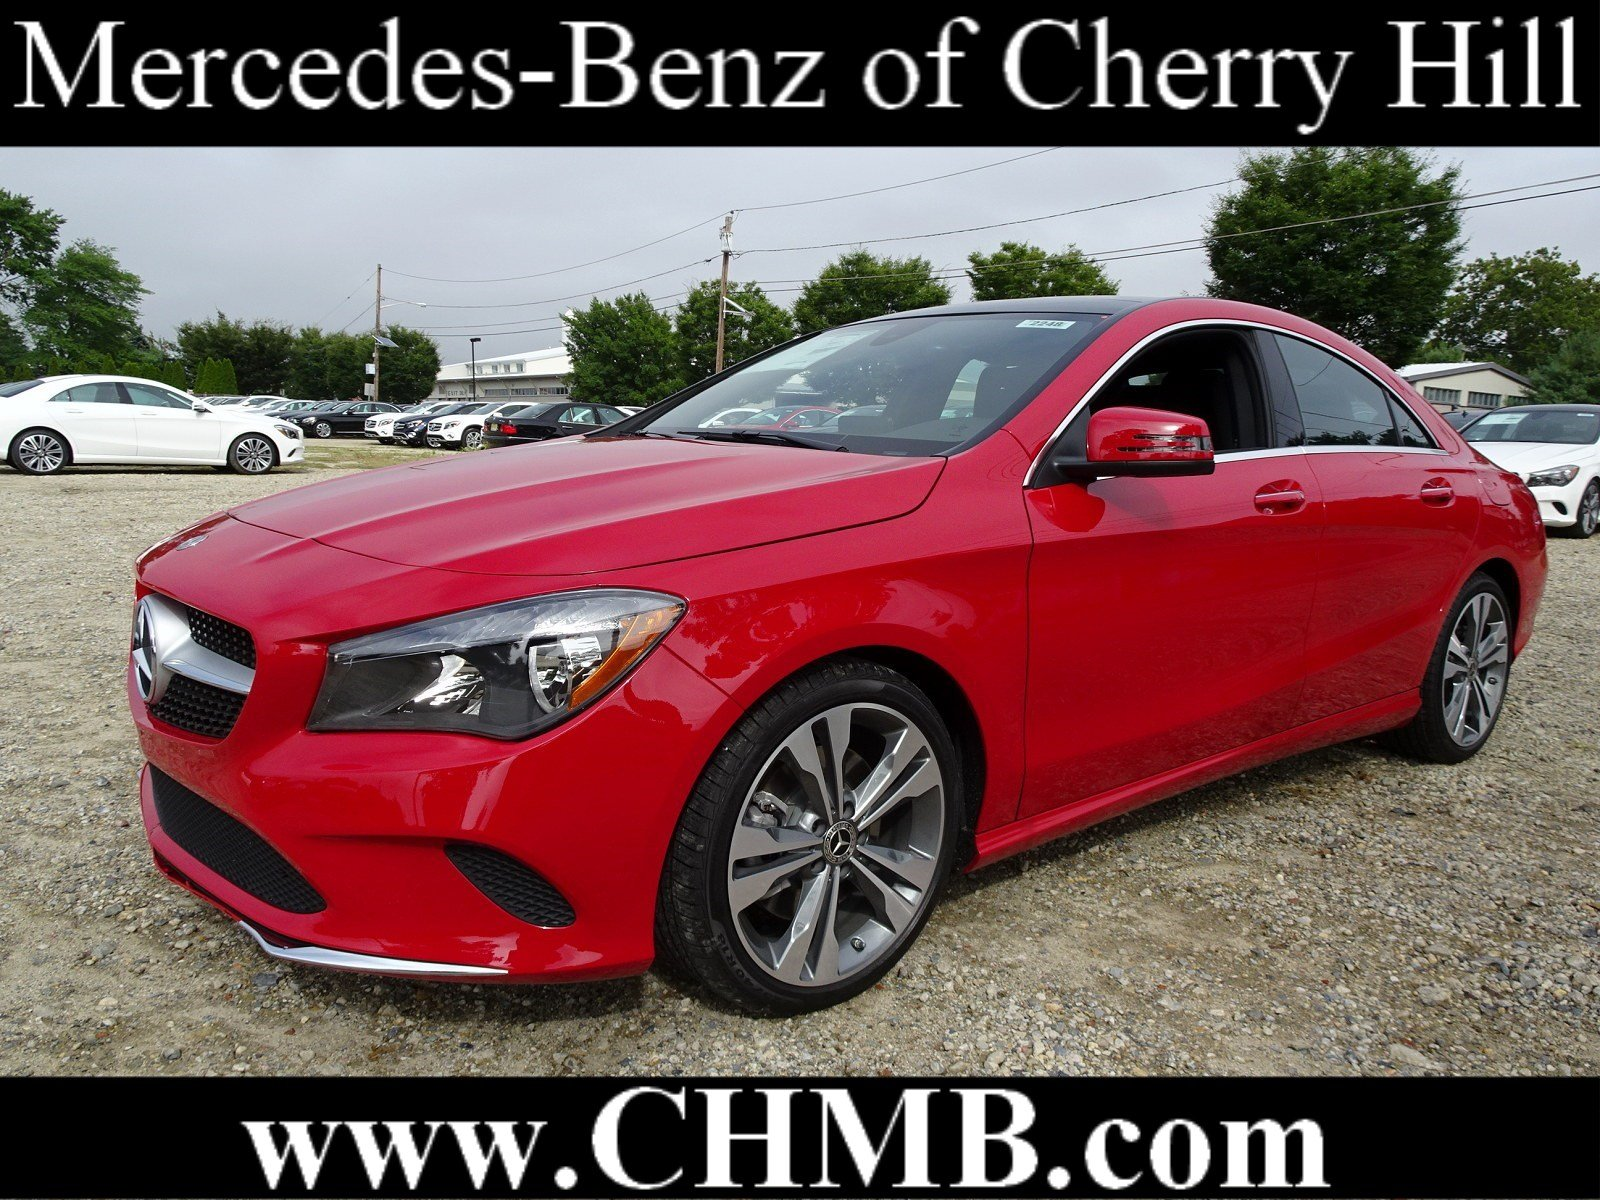 New 2019 Mercedes Benz CLA CLA 250 Coupe in Cherry Hill M2248